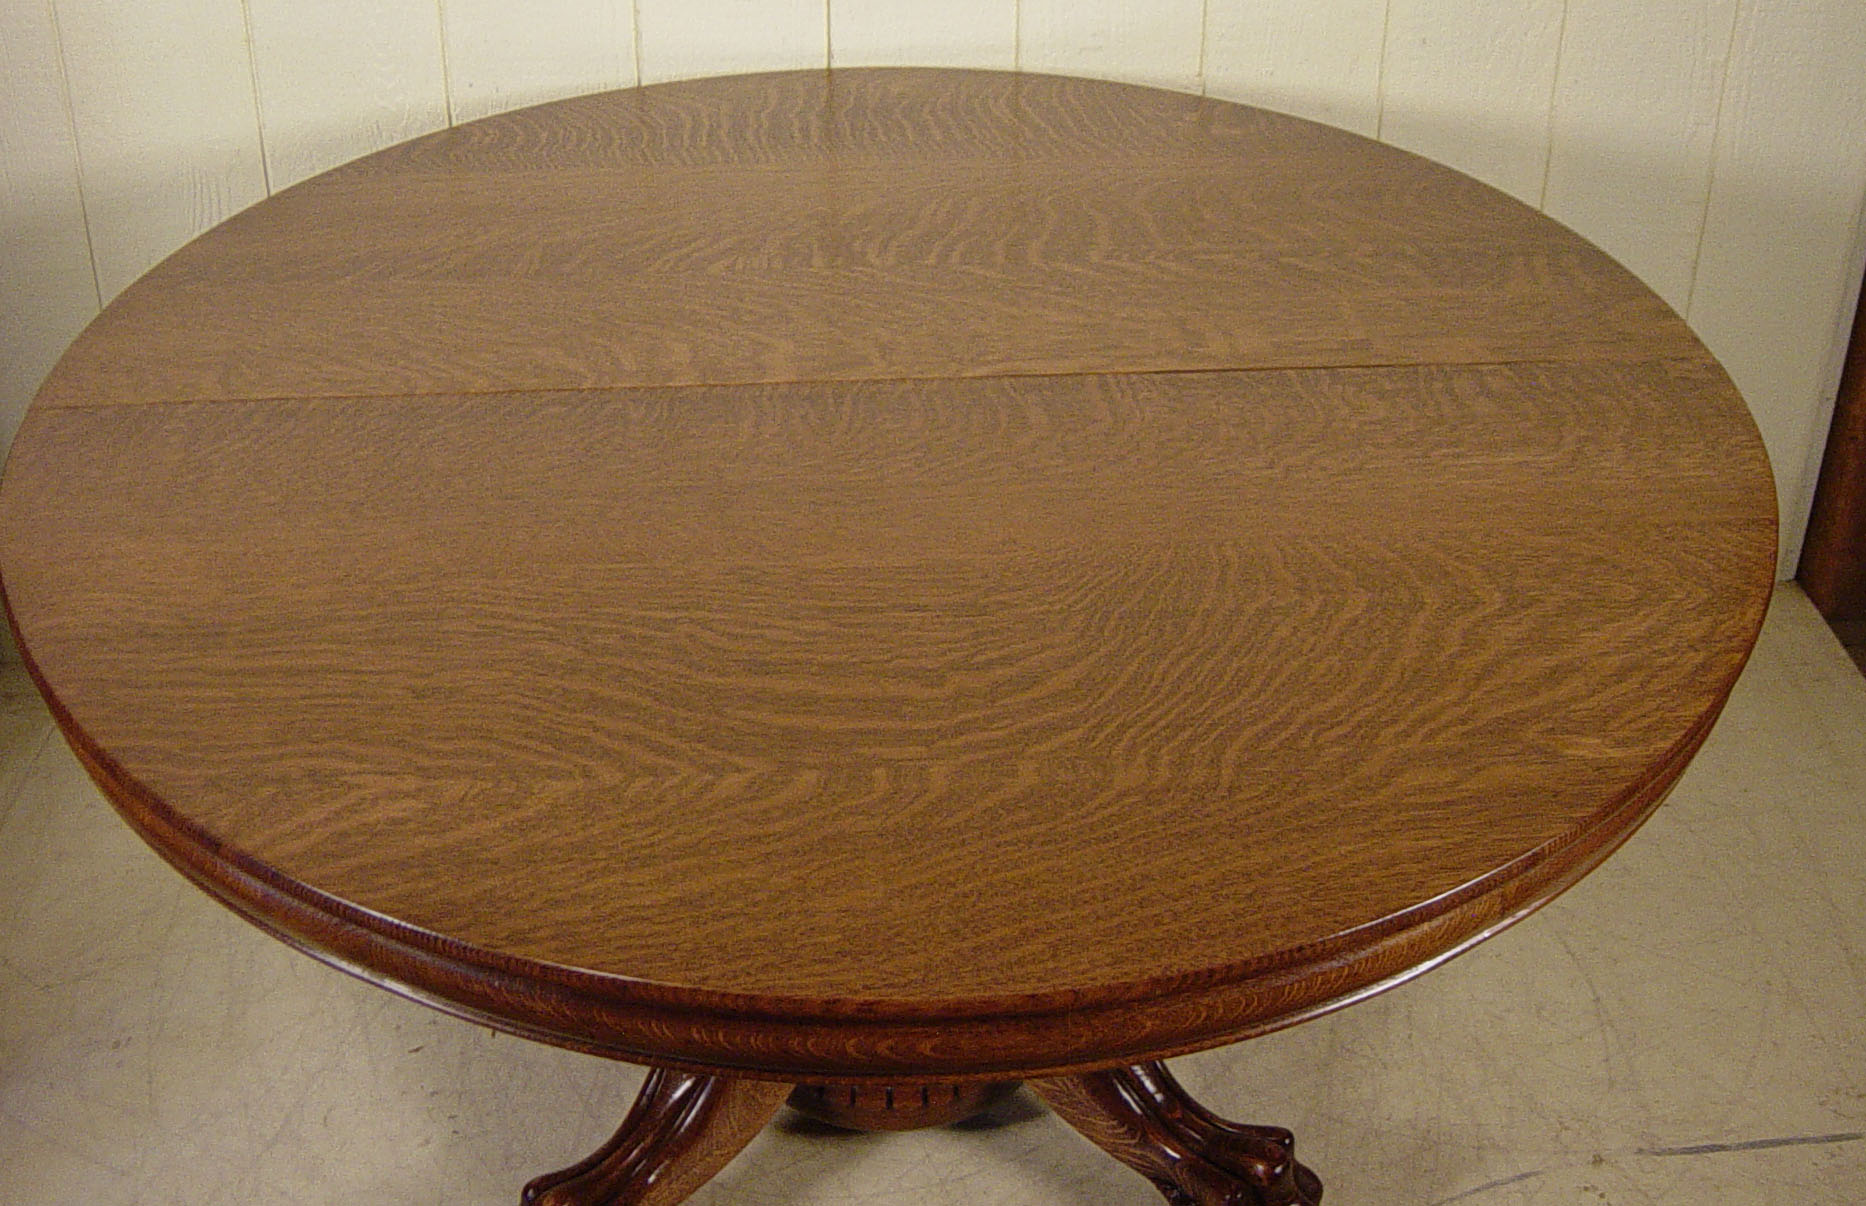 54 Round Oak Hastings Table Co dining table with 4 leaves